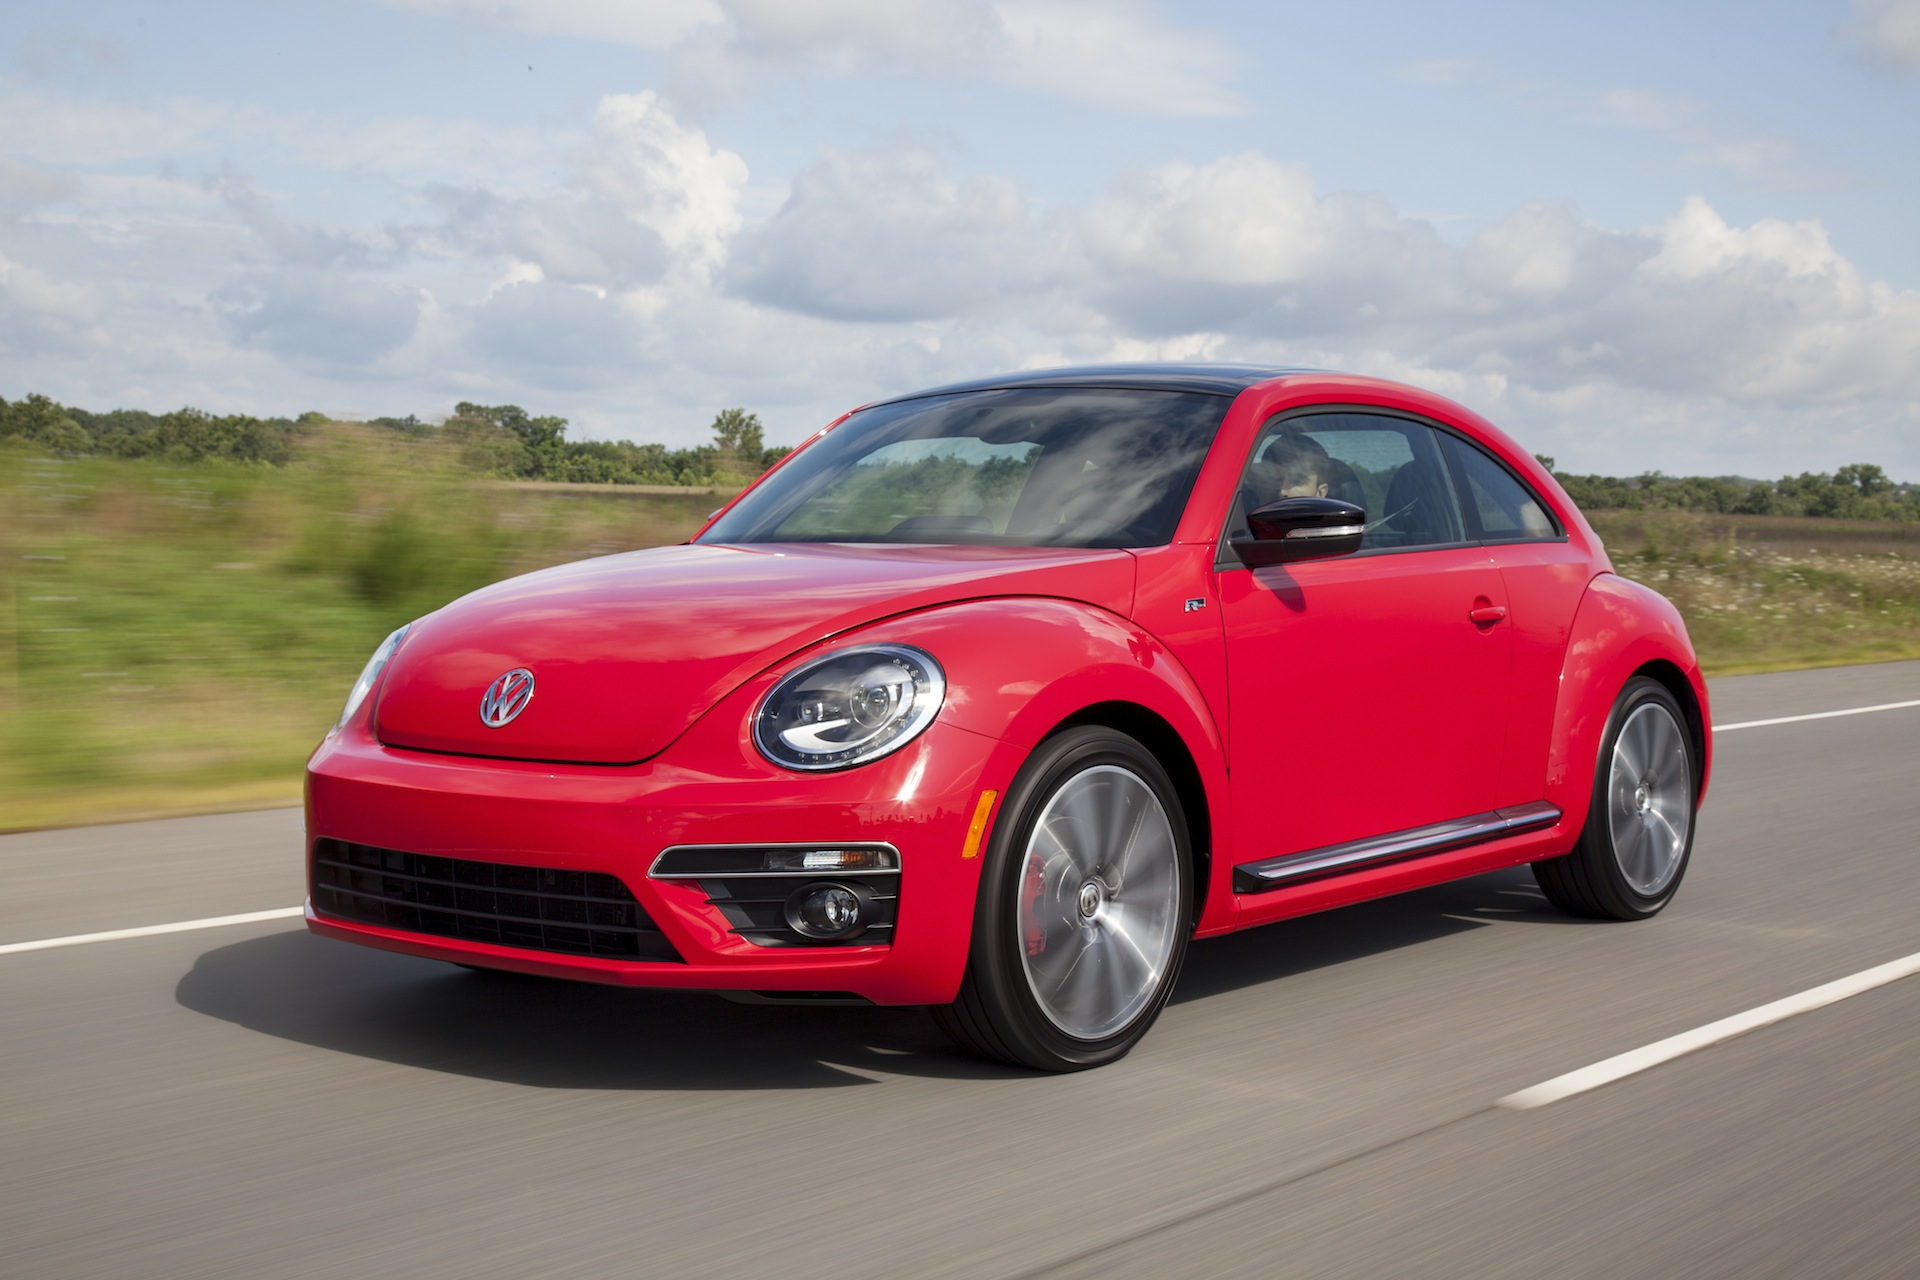 2014 volkswagen beetle vw review ratings specs prices. Black Bedroom Furniture Sets. Home Design Ideas